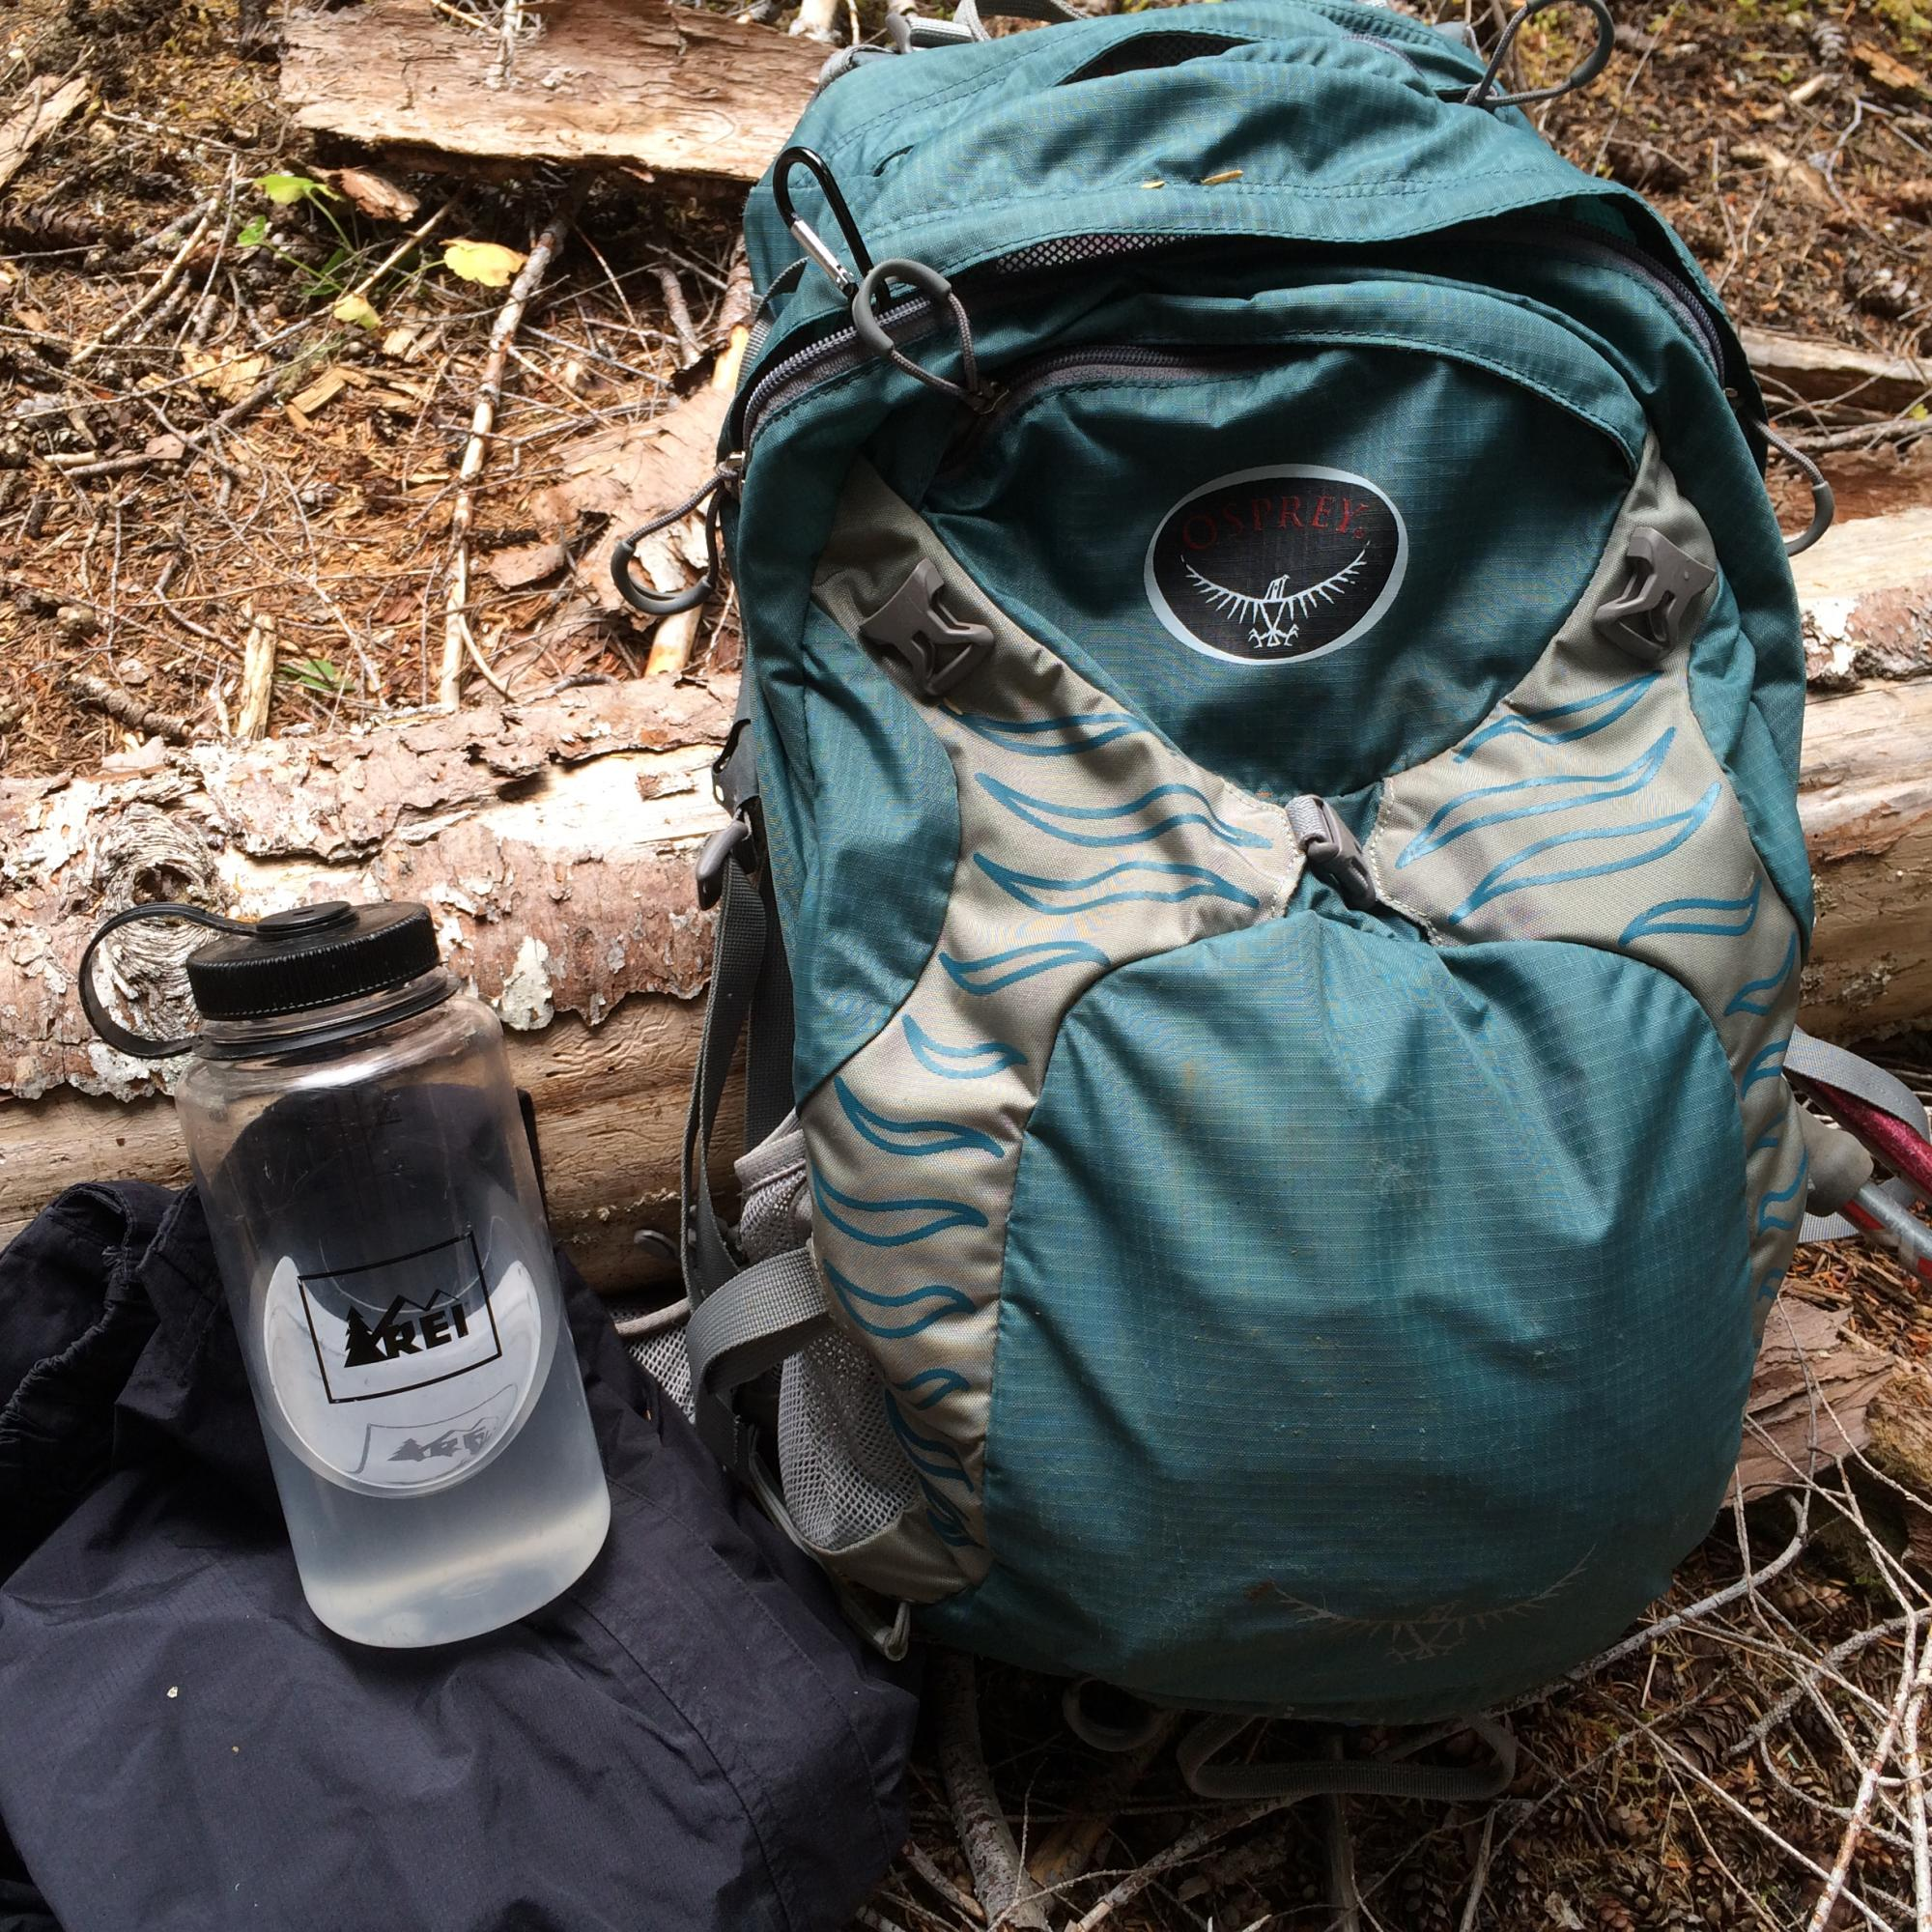 Hiking backpack and hiking water bottles